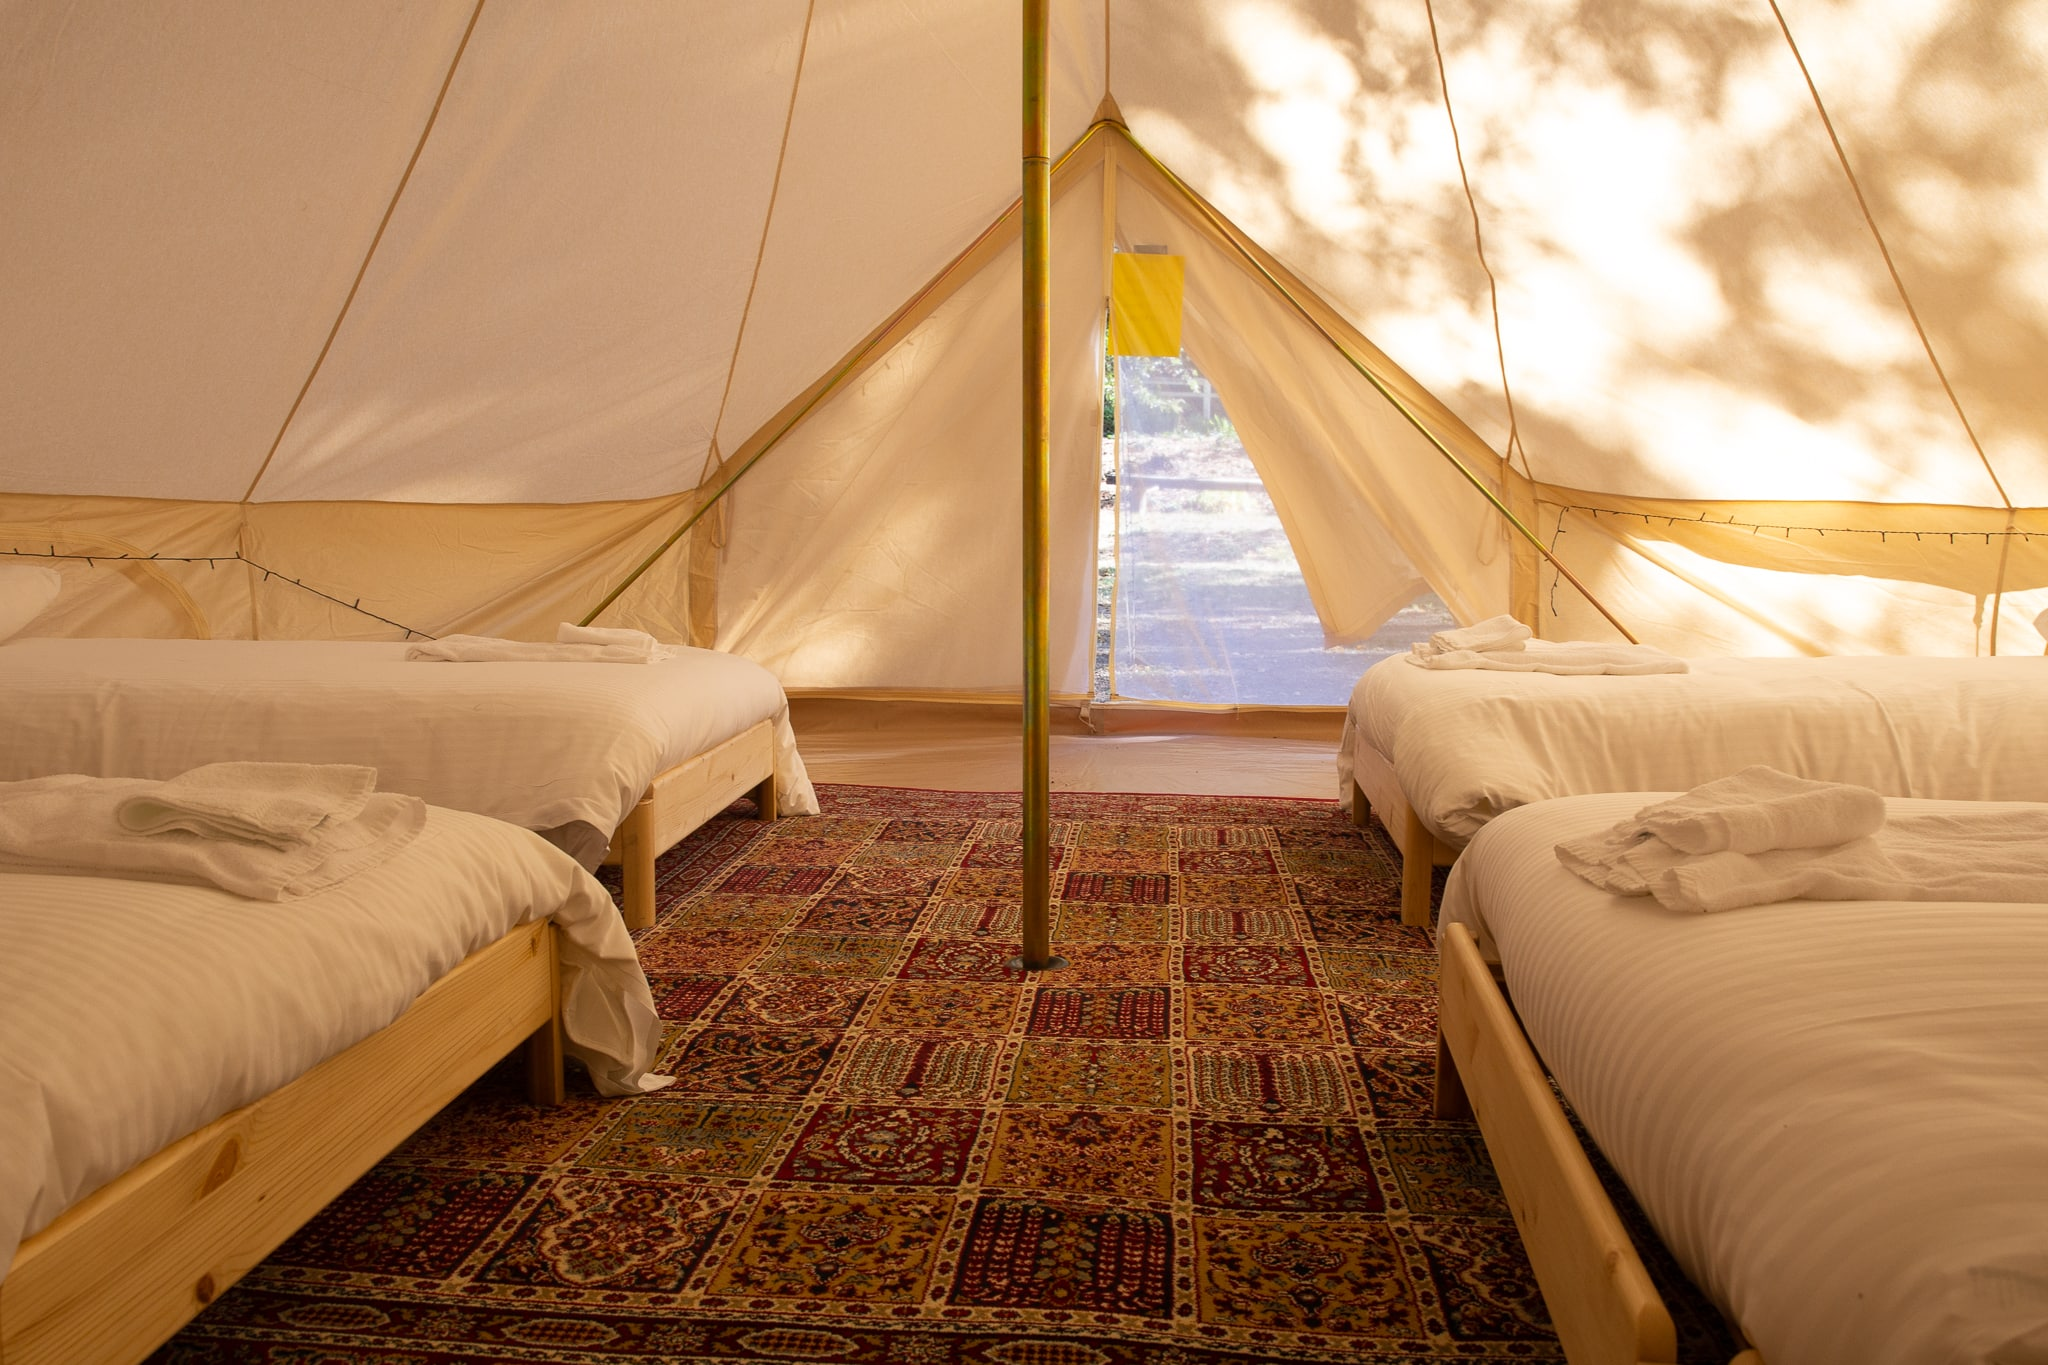 Belle glamping tent with rug and beds